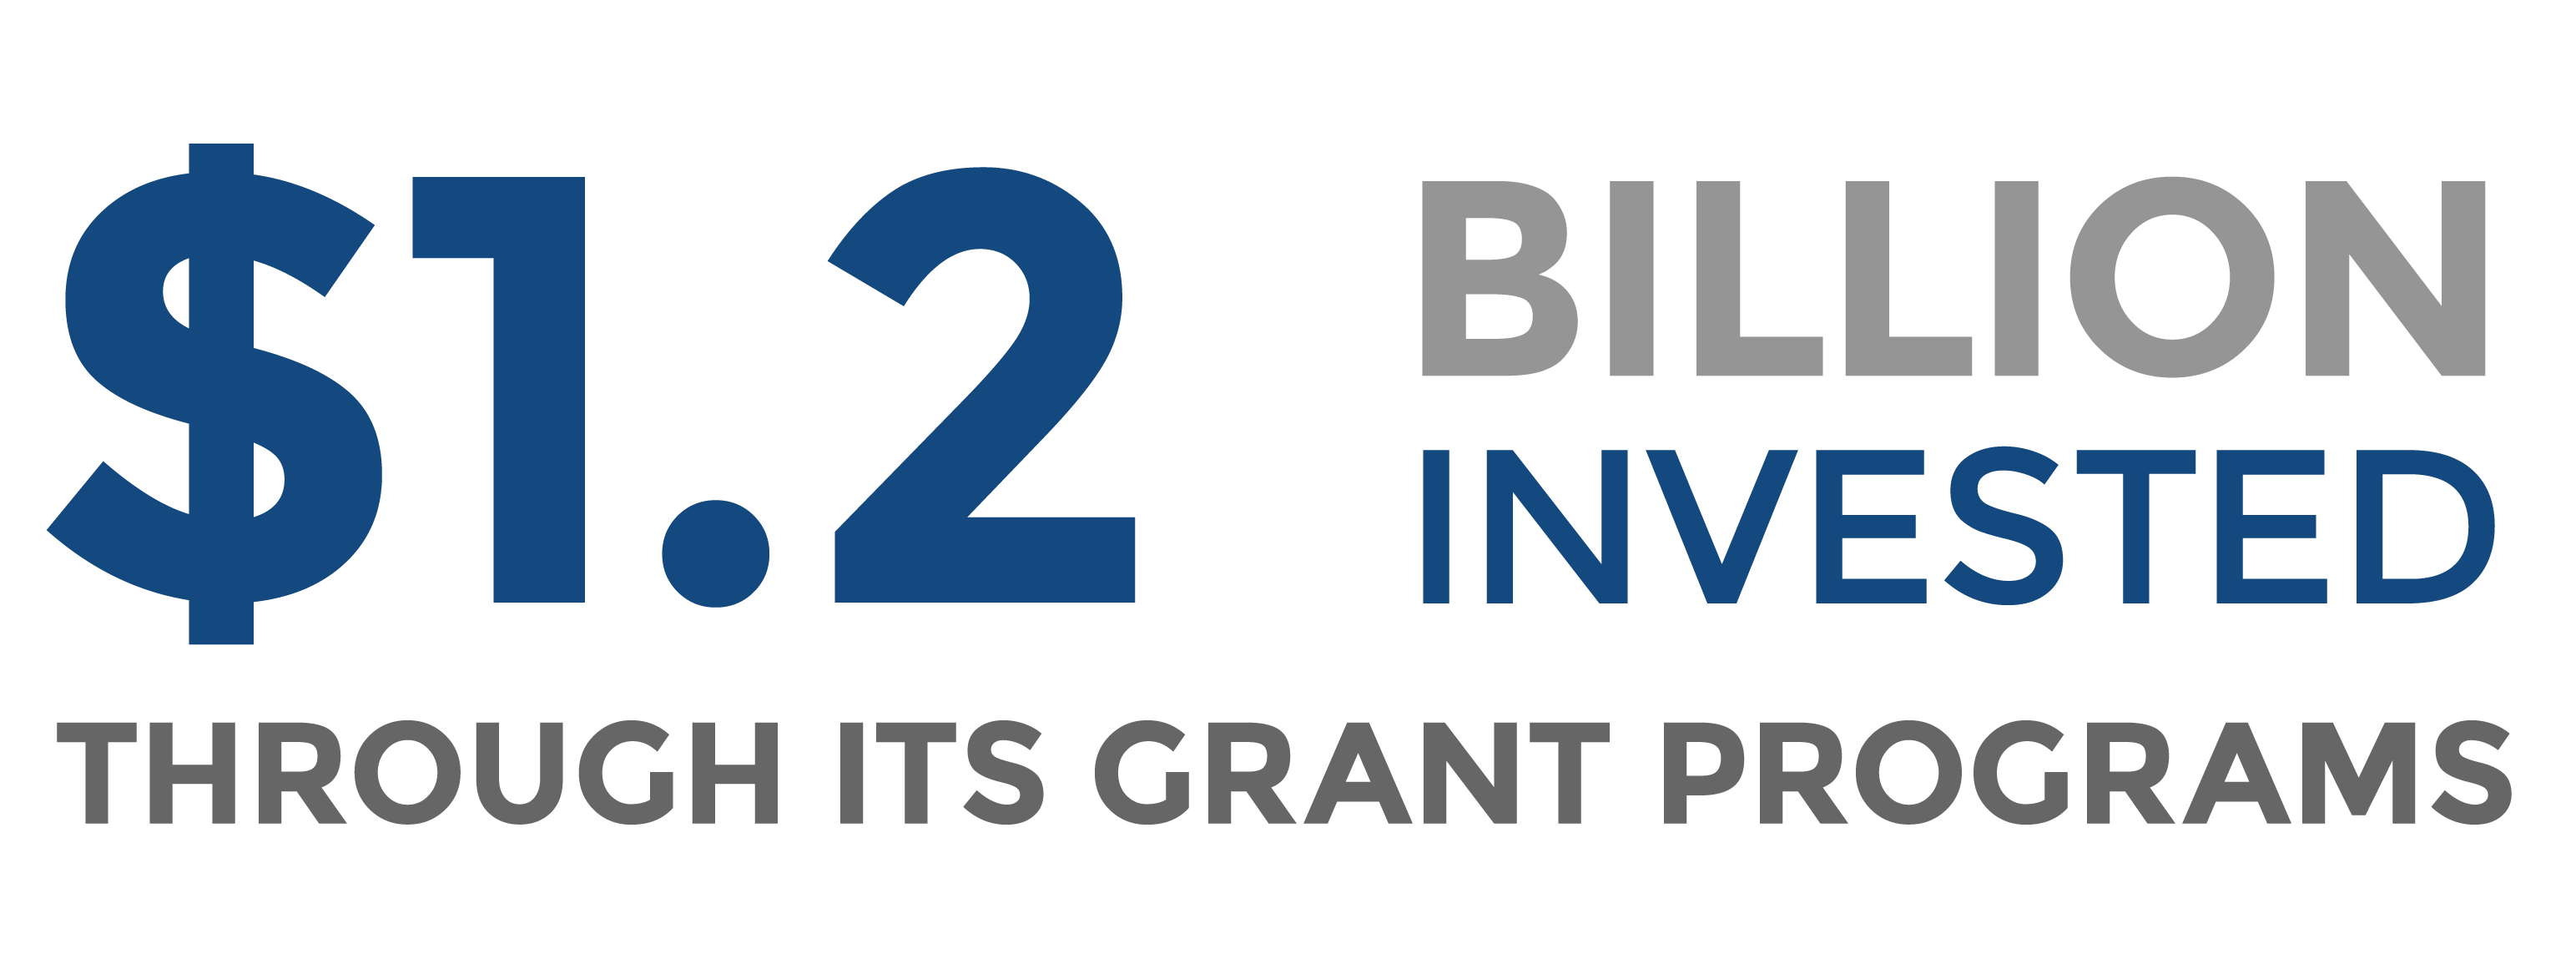 $775 million invested through its grant programs.